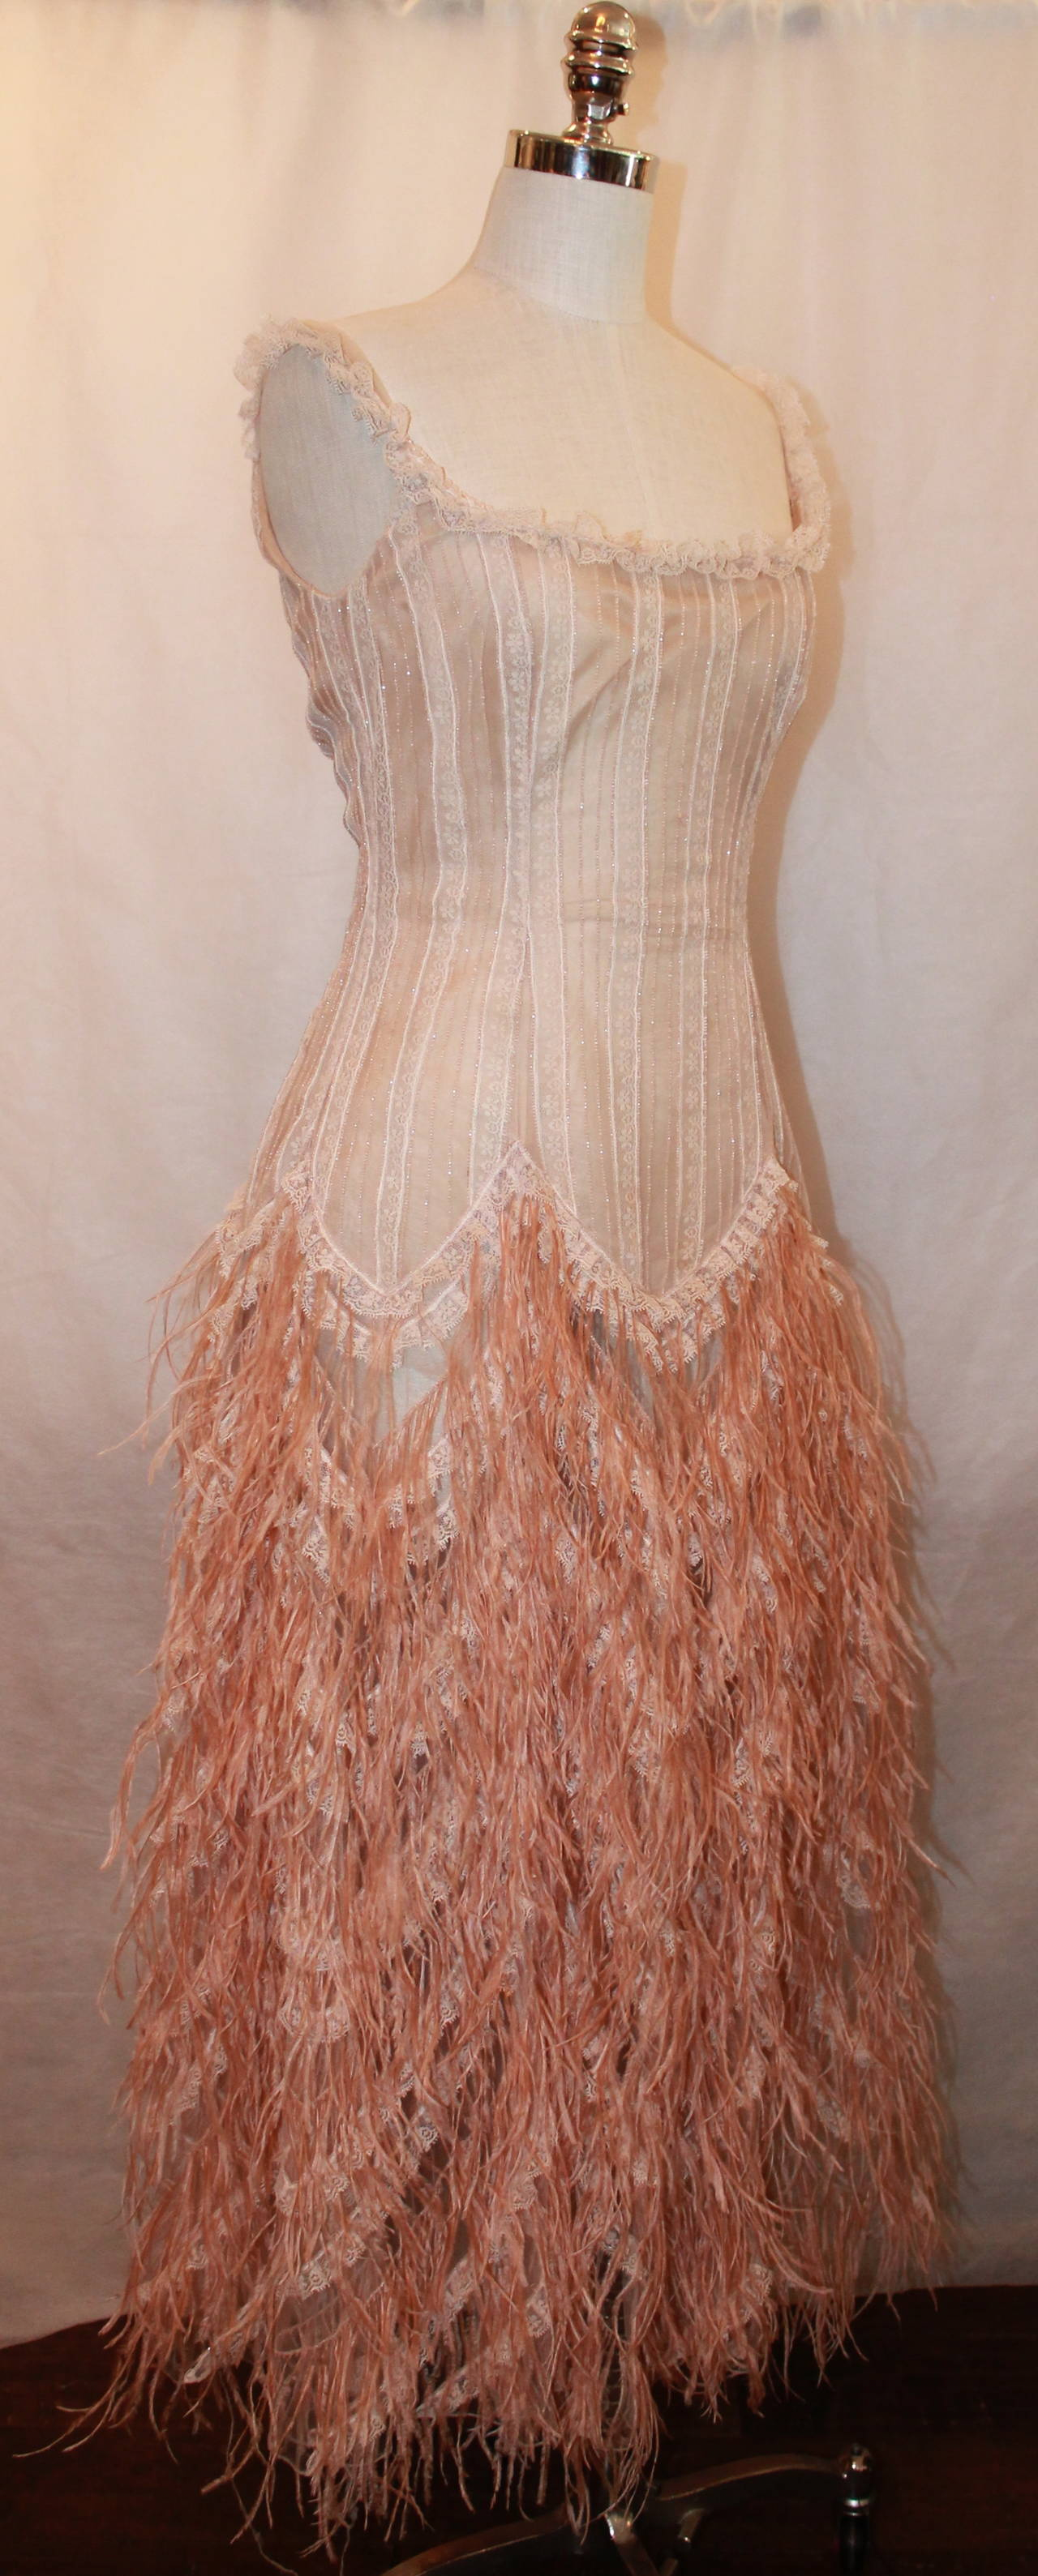 Oscar de la Renta Blush Lace Beaded Gown with Ostrich Feathers & Shawl - M 2